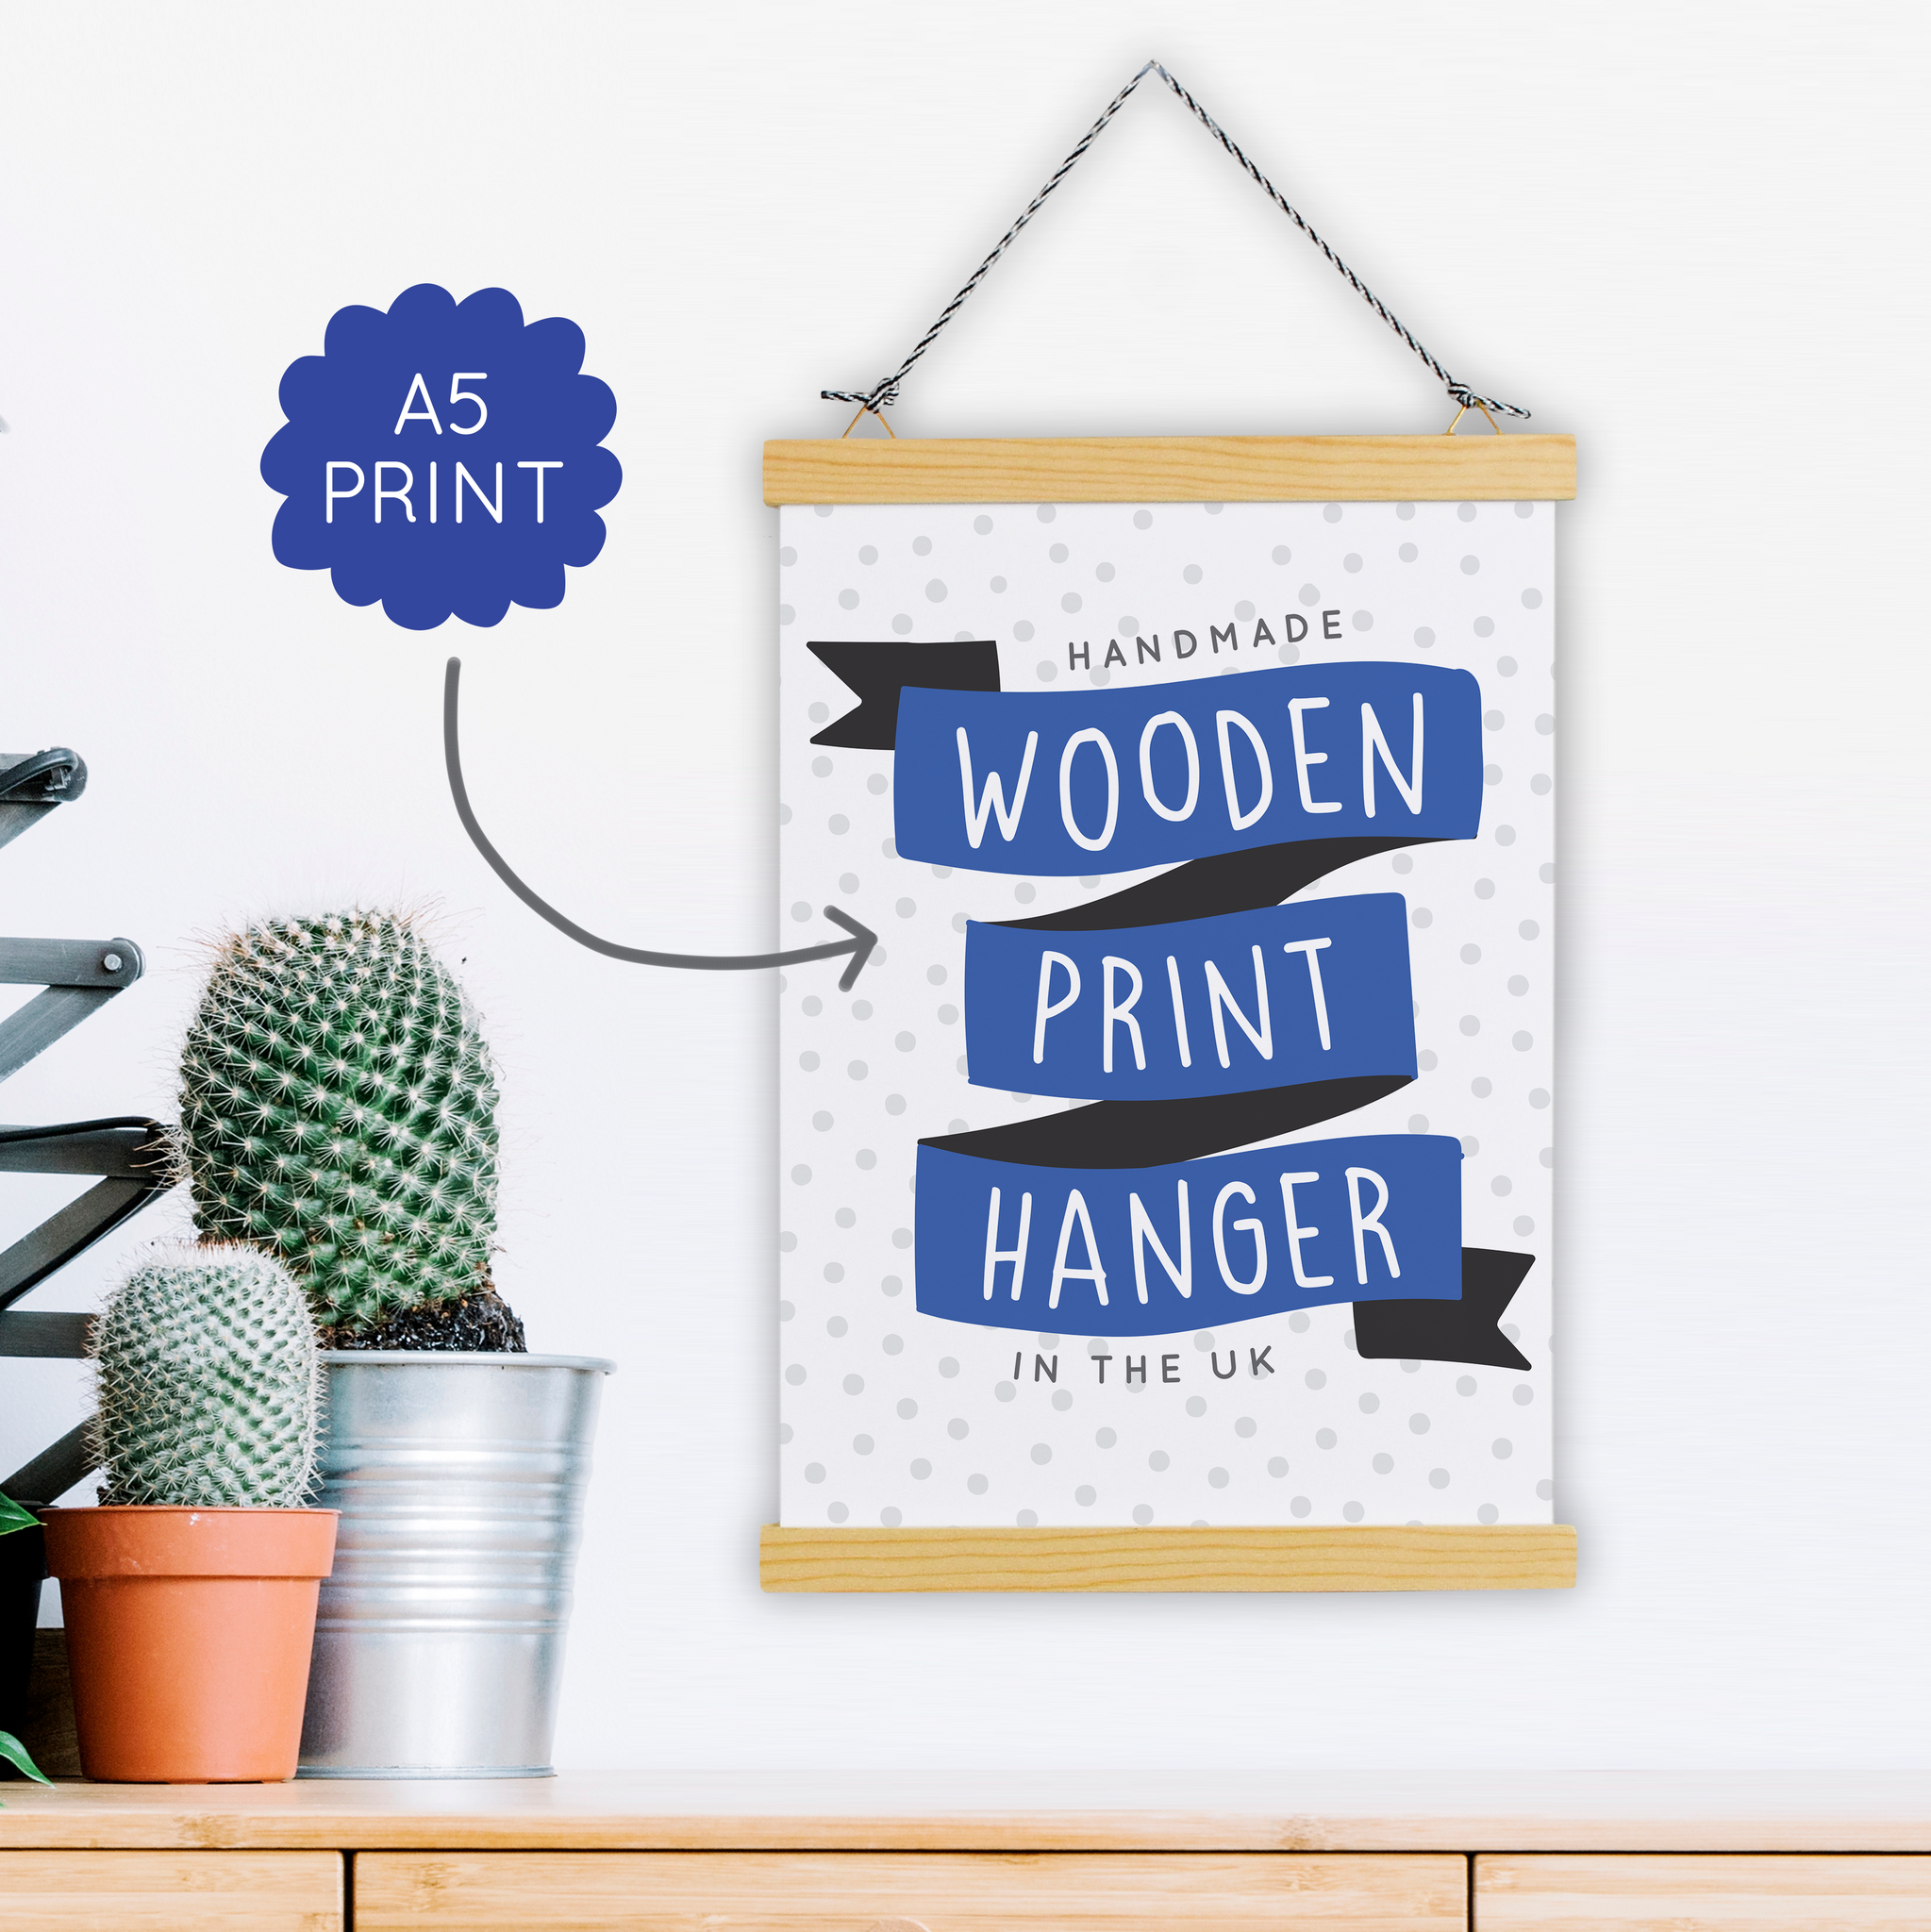 A5 Print Hanger - Wooden & Magnetic - Handmade in the UK - Two For Joy Illustration